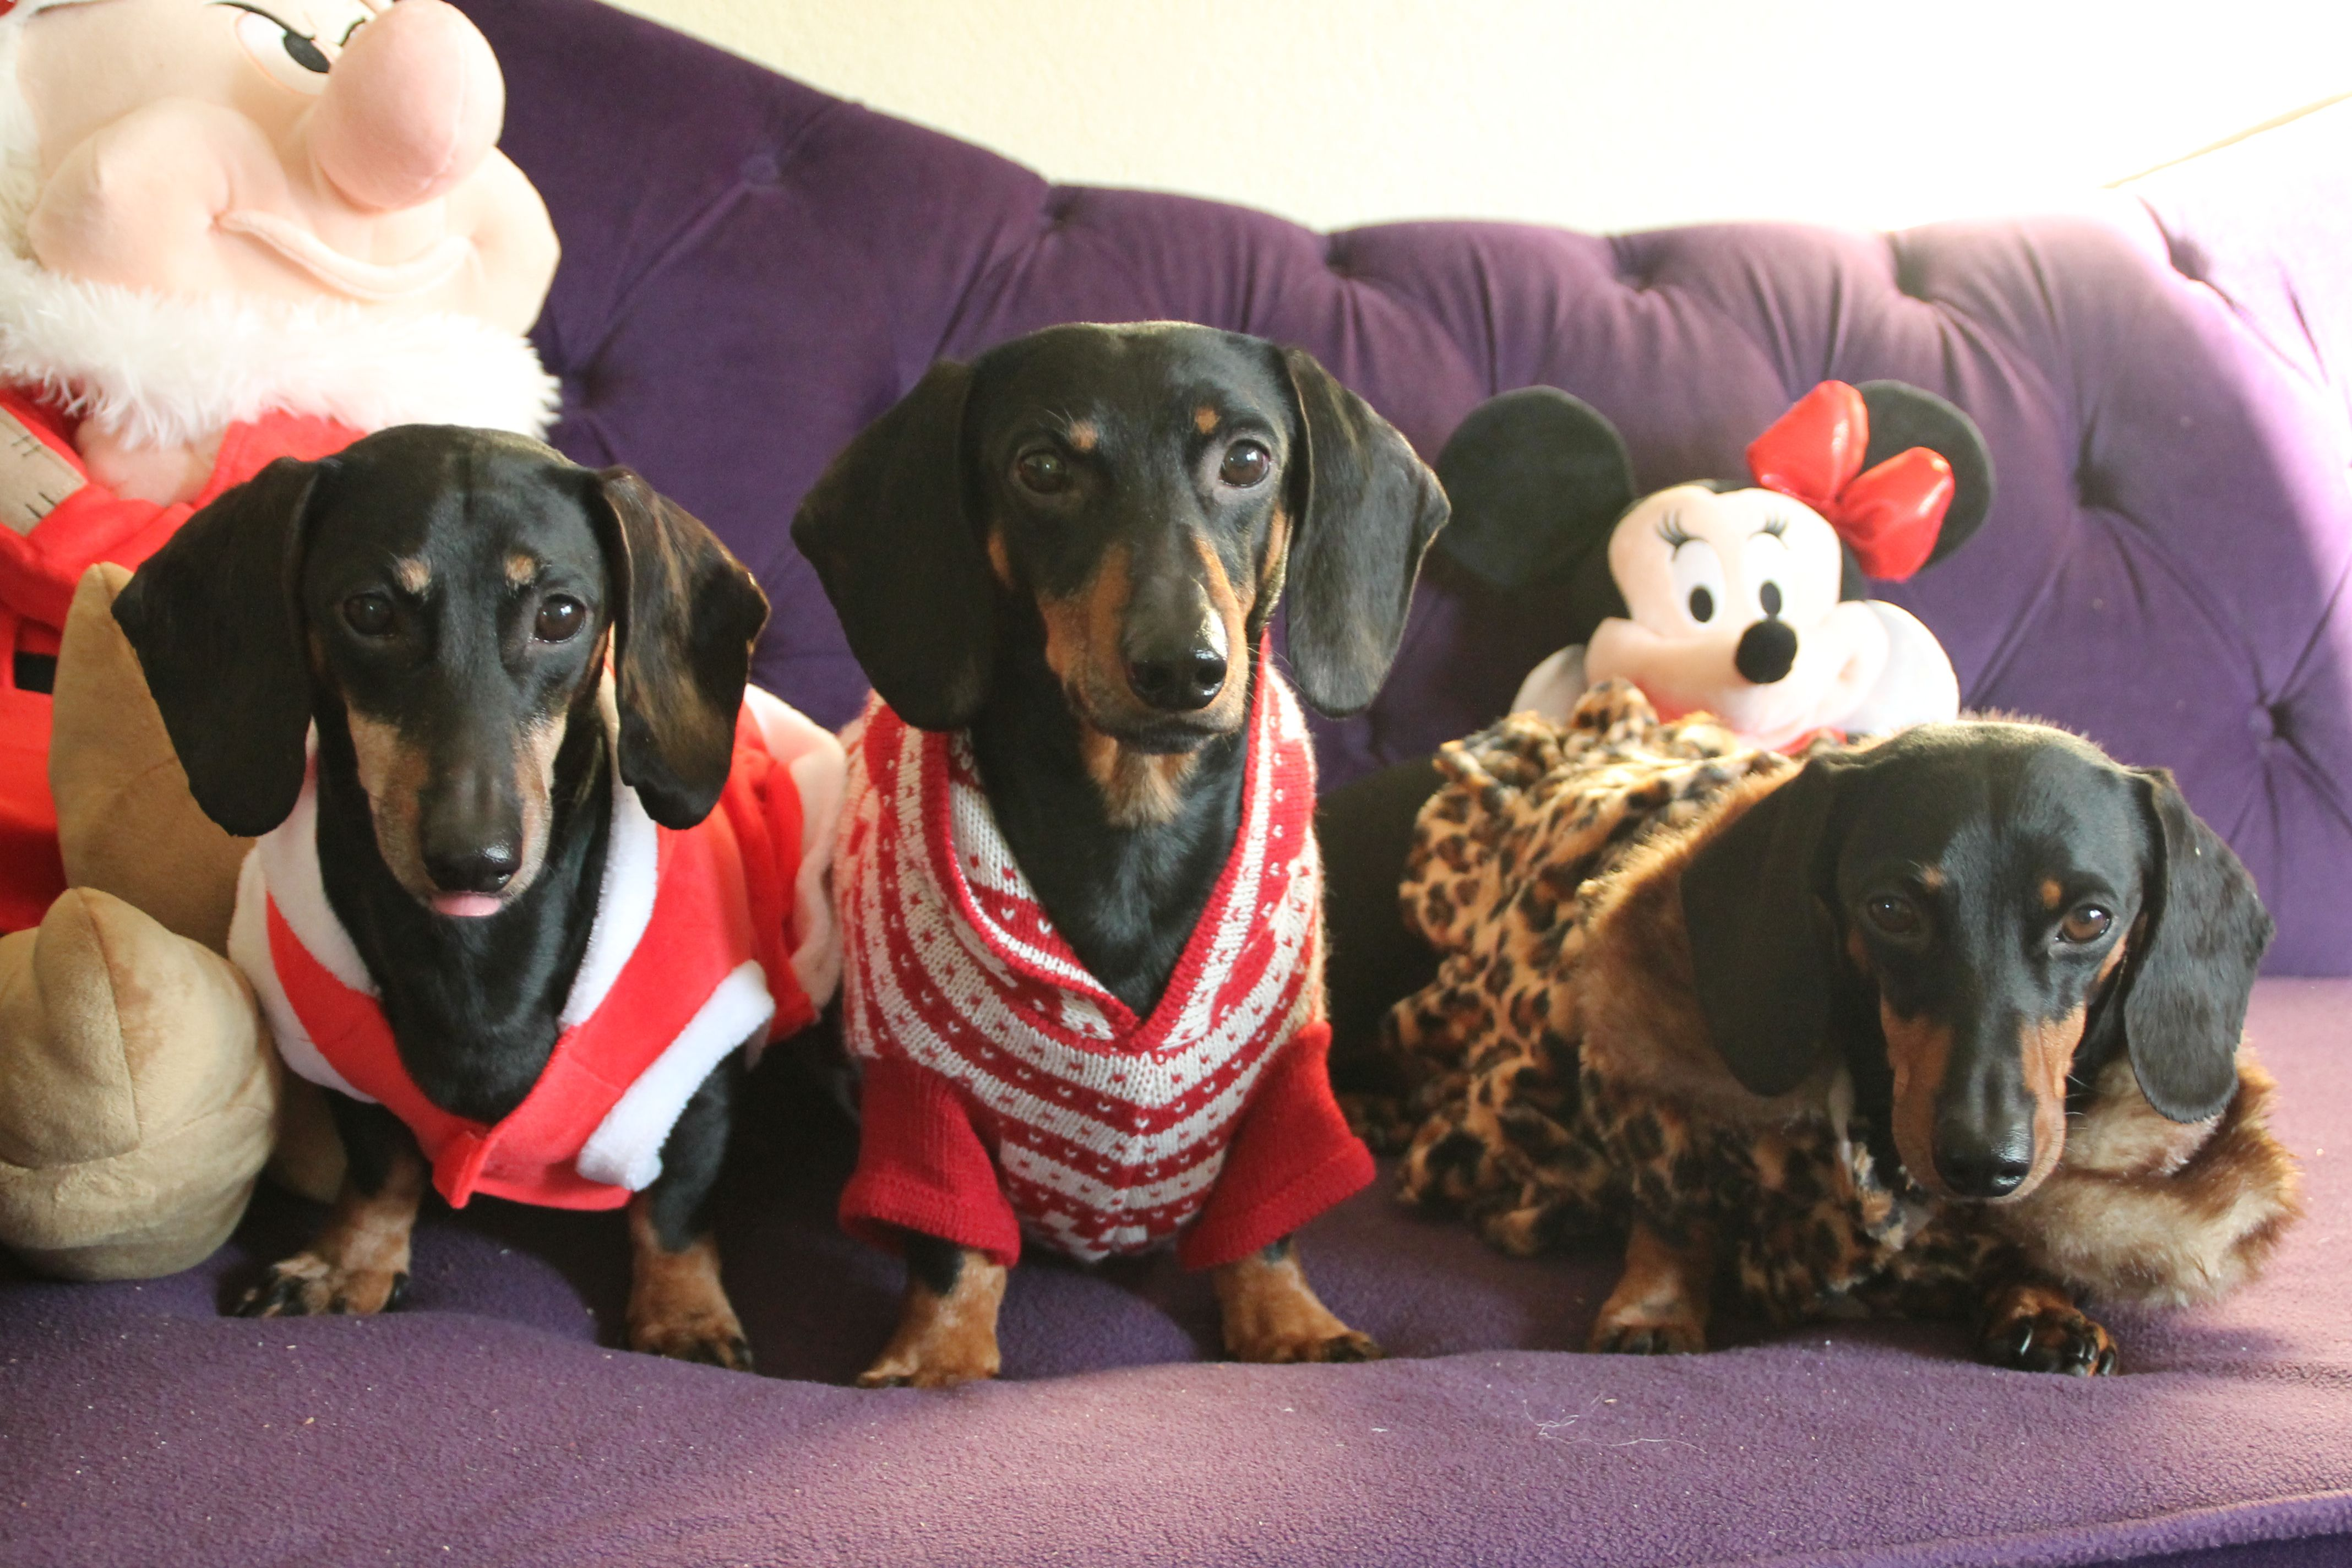 My darling Dachshunds are all ready for X-Mas!